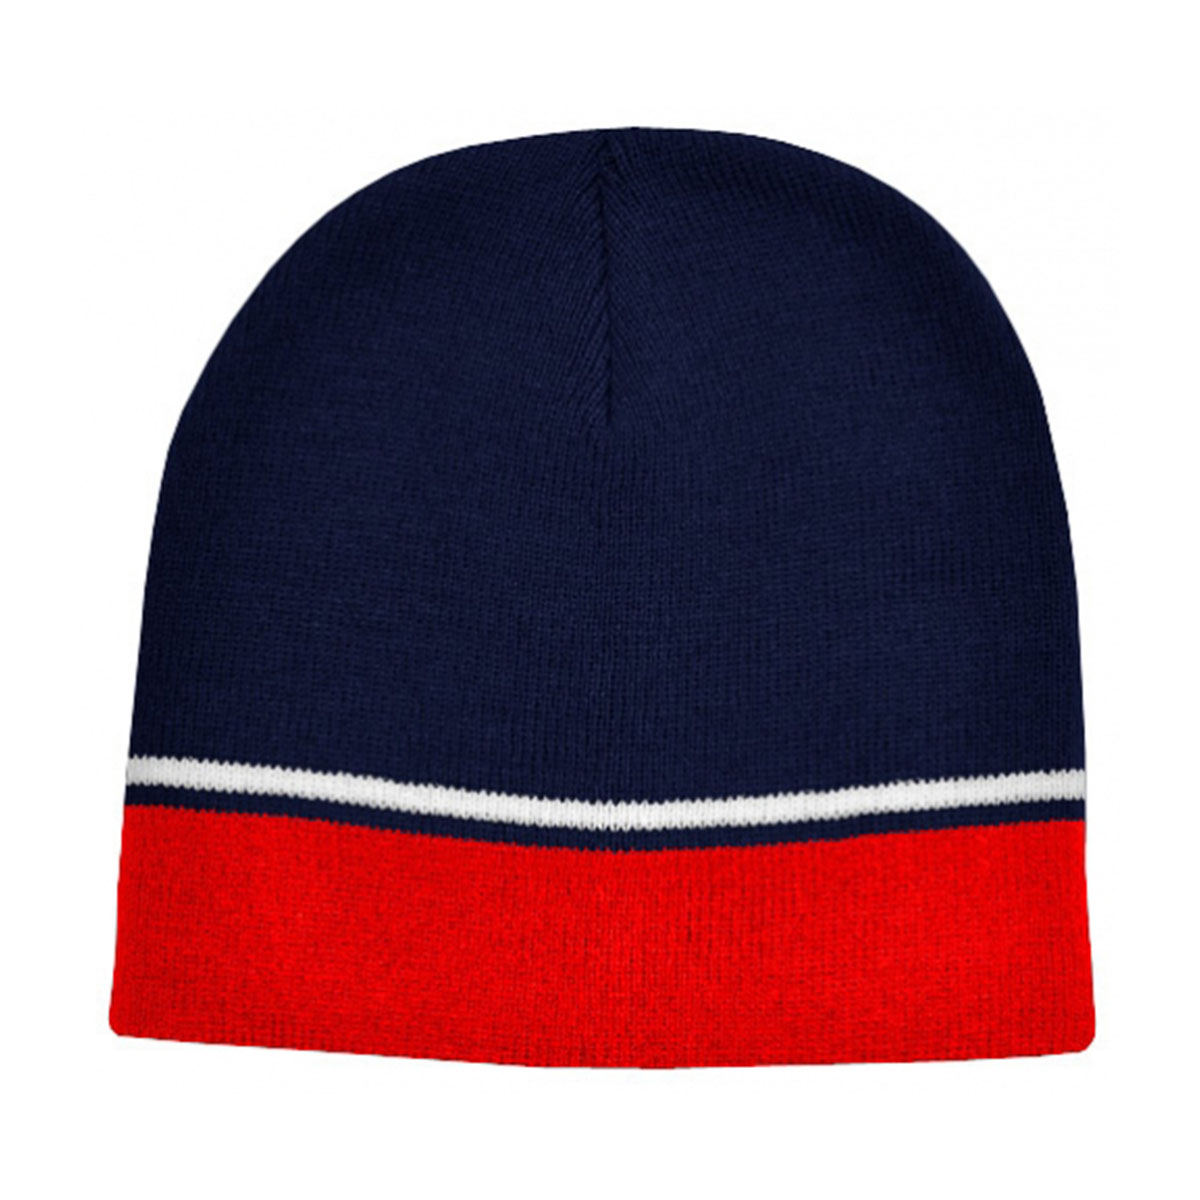 Two-Tone Beanie-Navy / White / Red